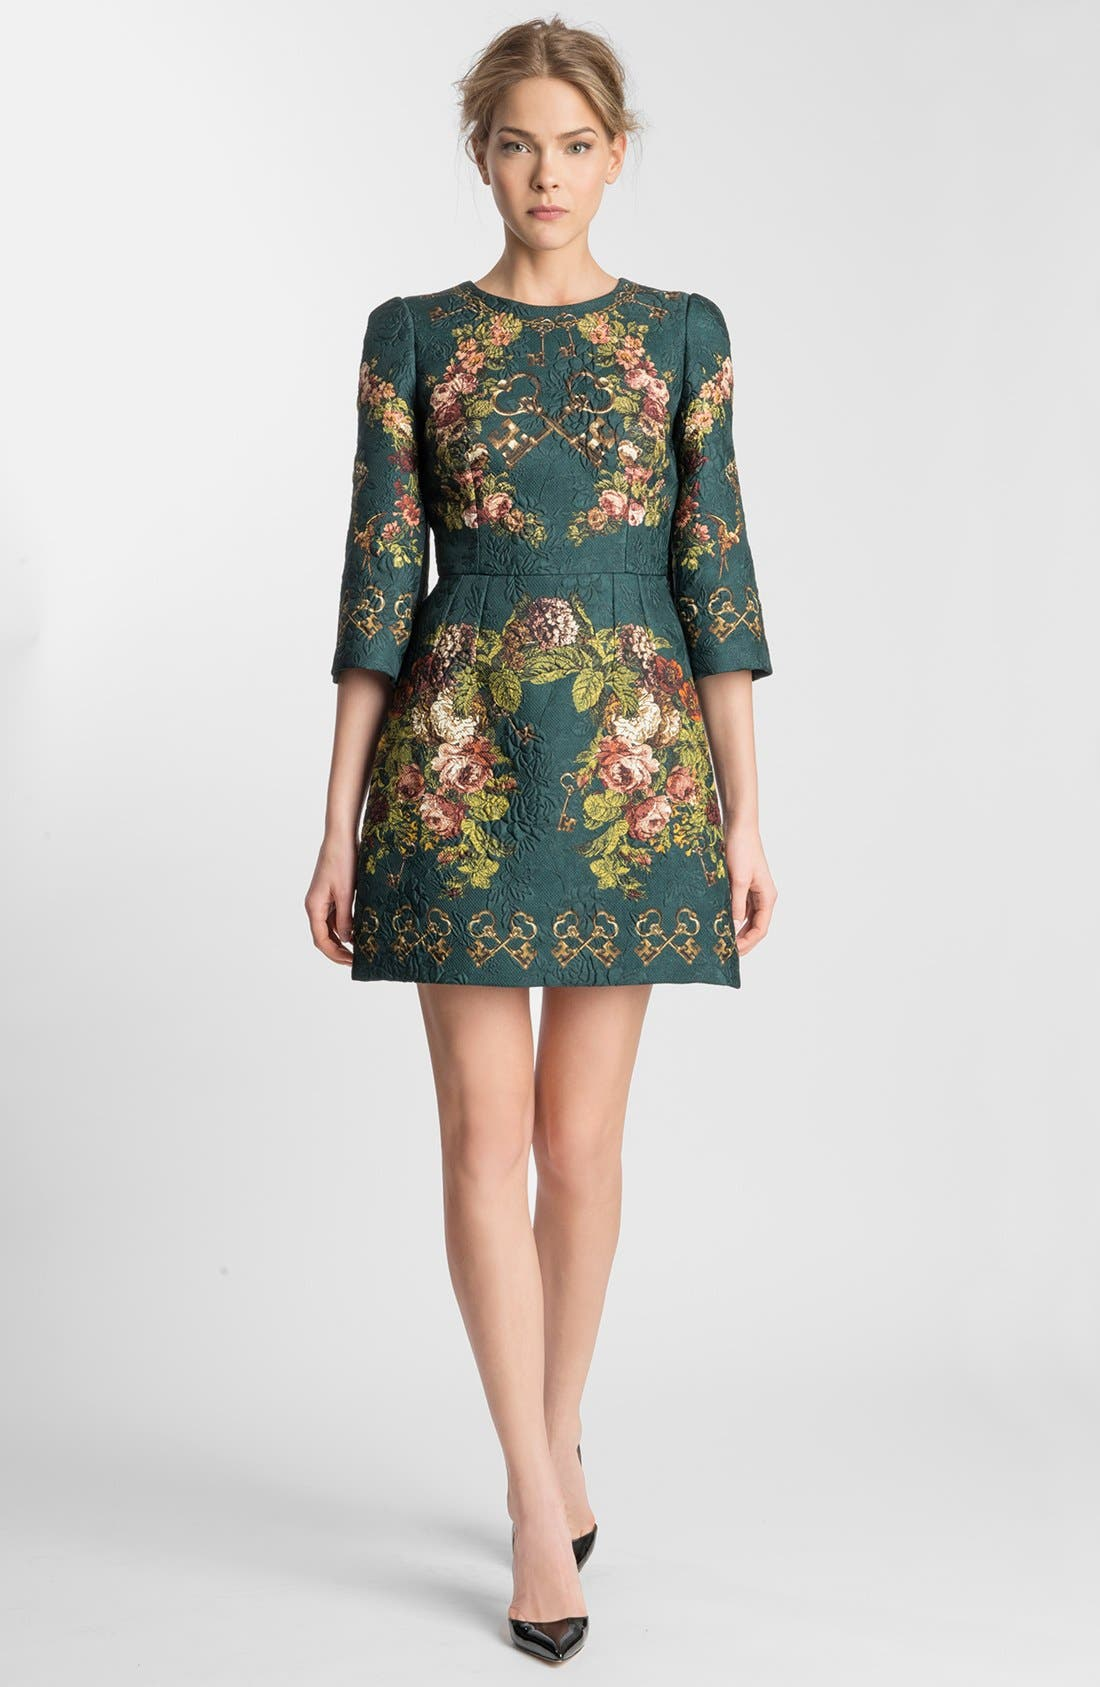 Main Image - Dolce&Gabbana Key Print Floral Brocade Dress